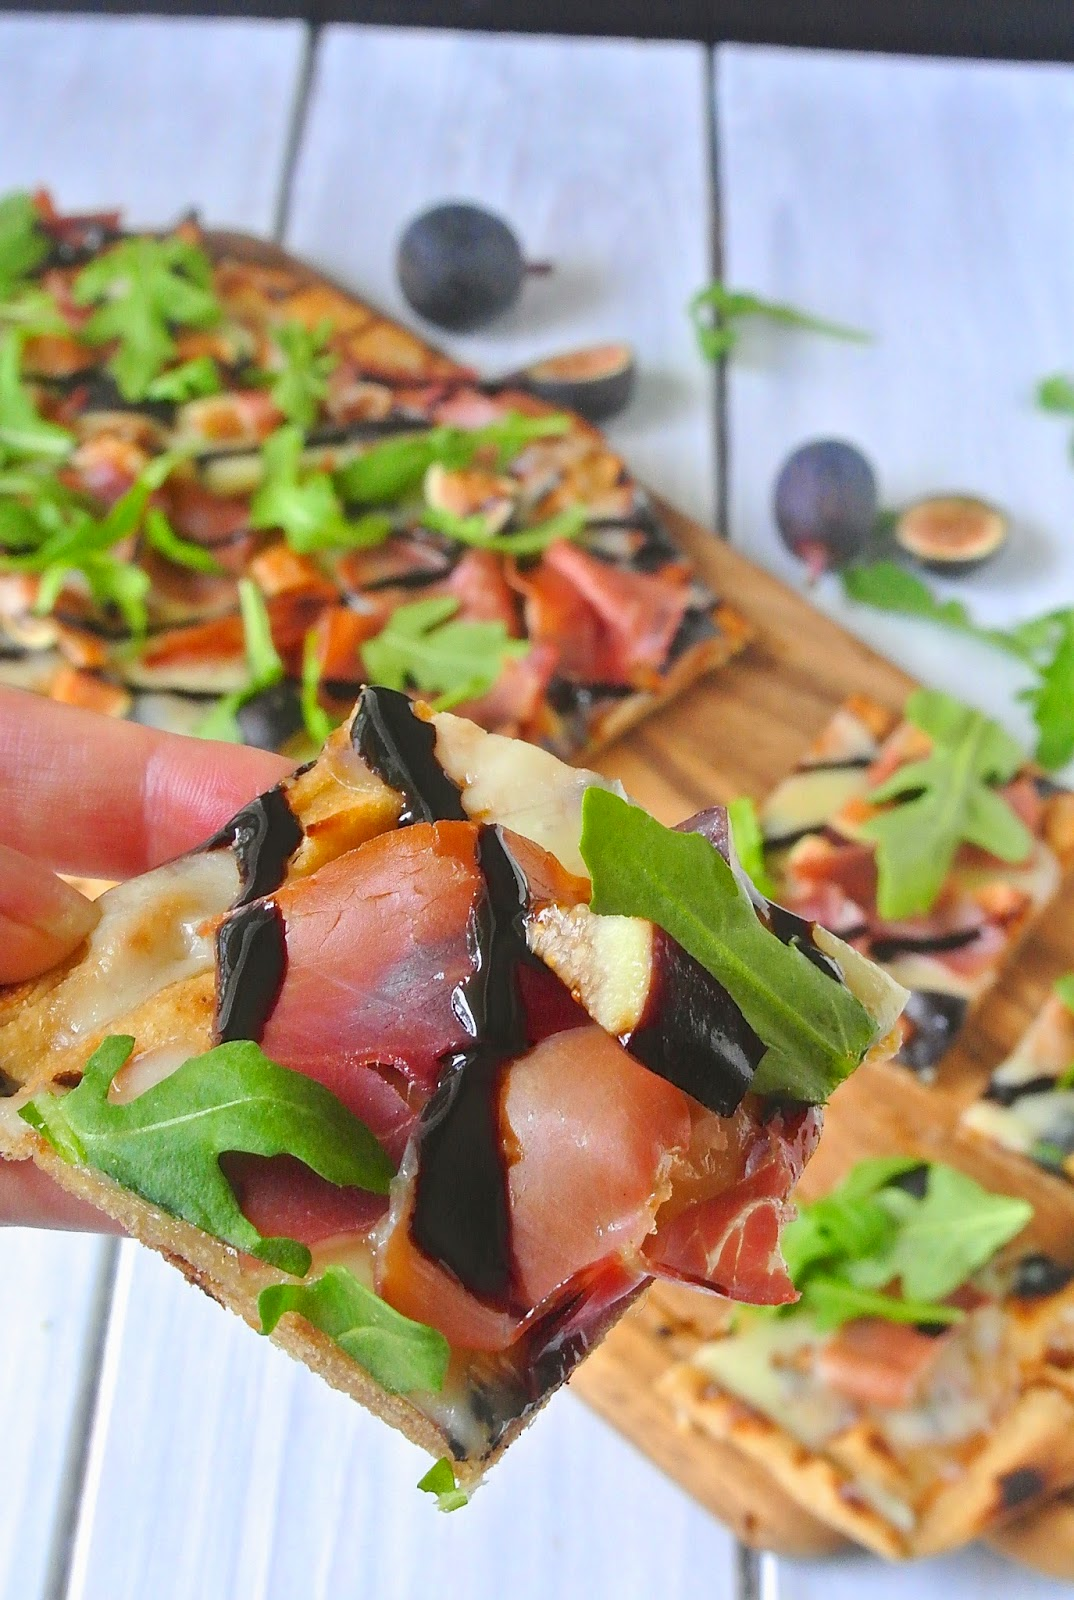 ... compliment to the creamy cheese, peppery arugula and salty prosciutto